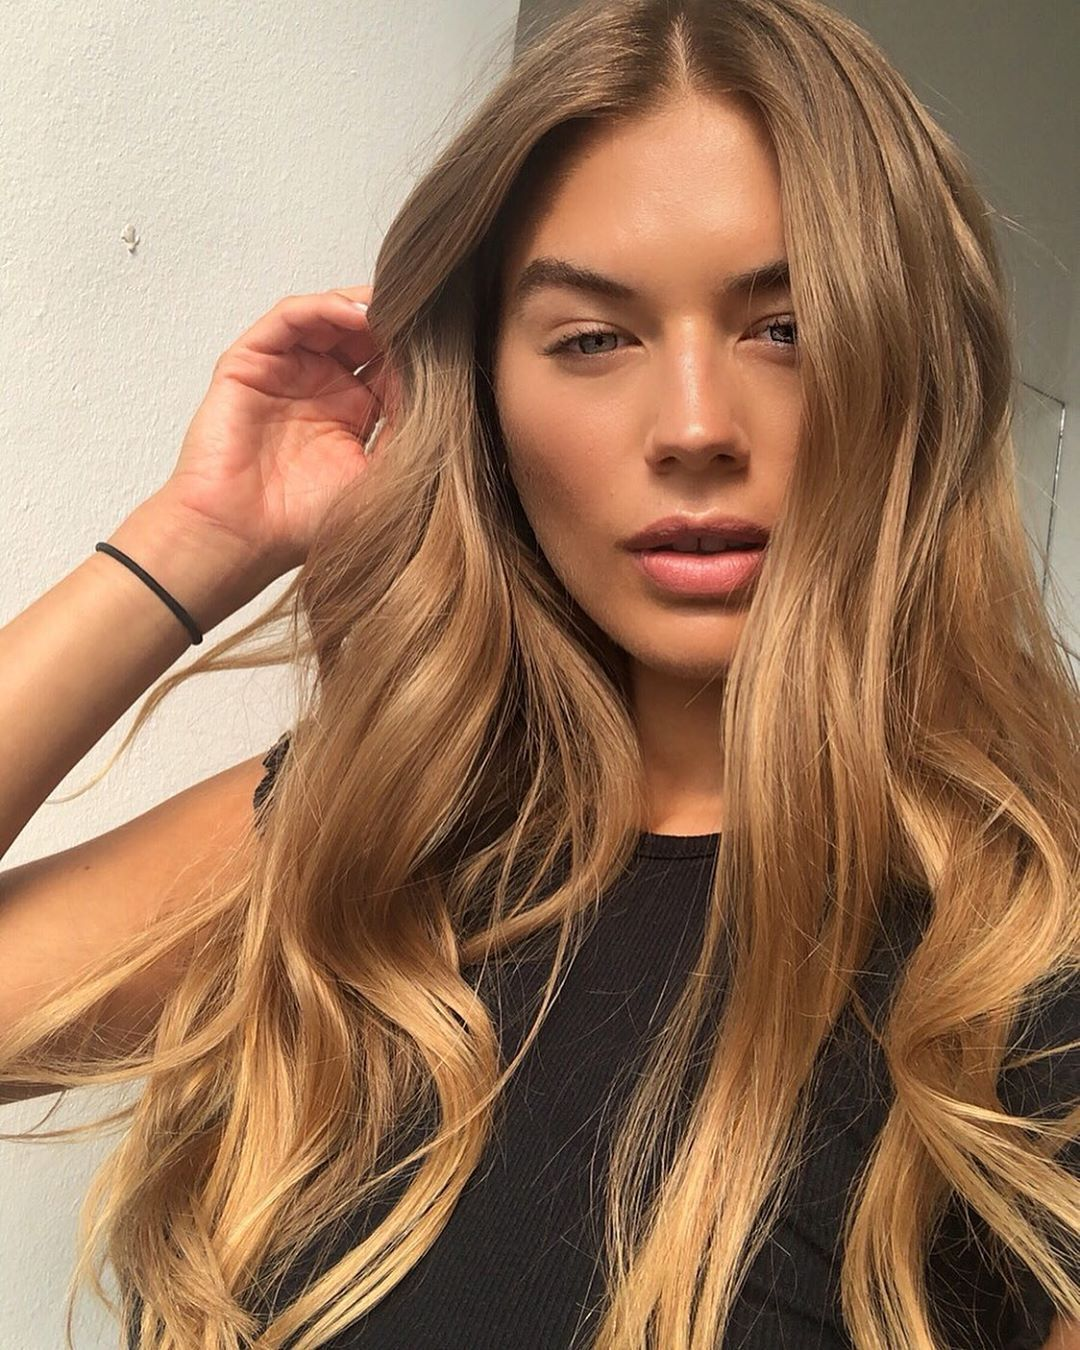 Finding the Latest Arabella Hair Style For Yourself!